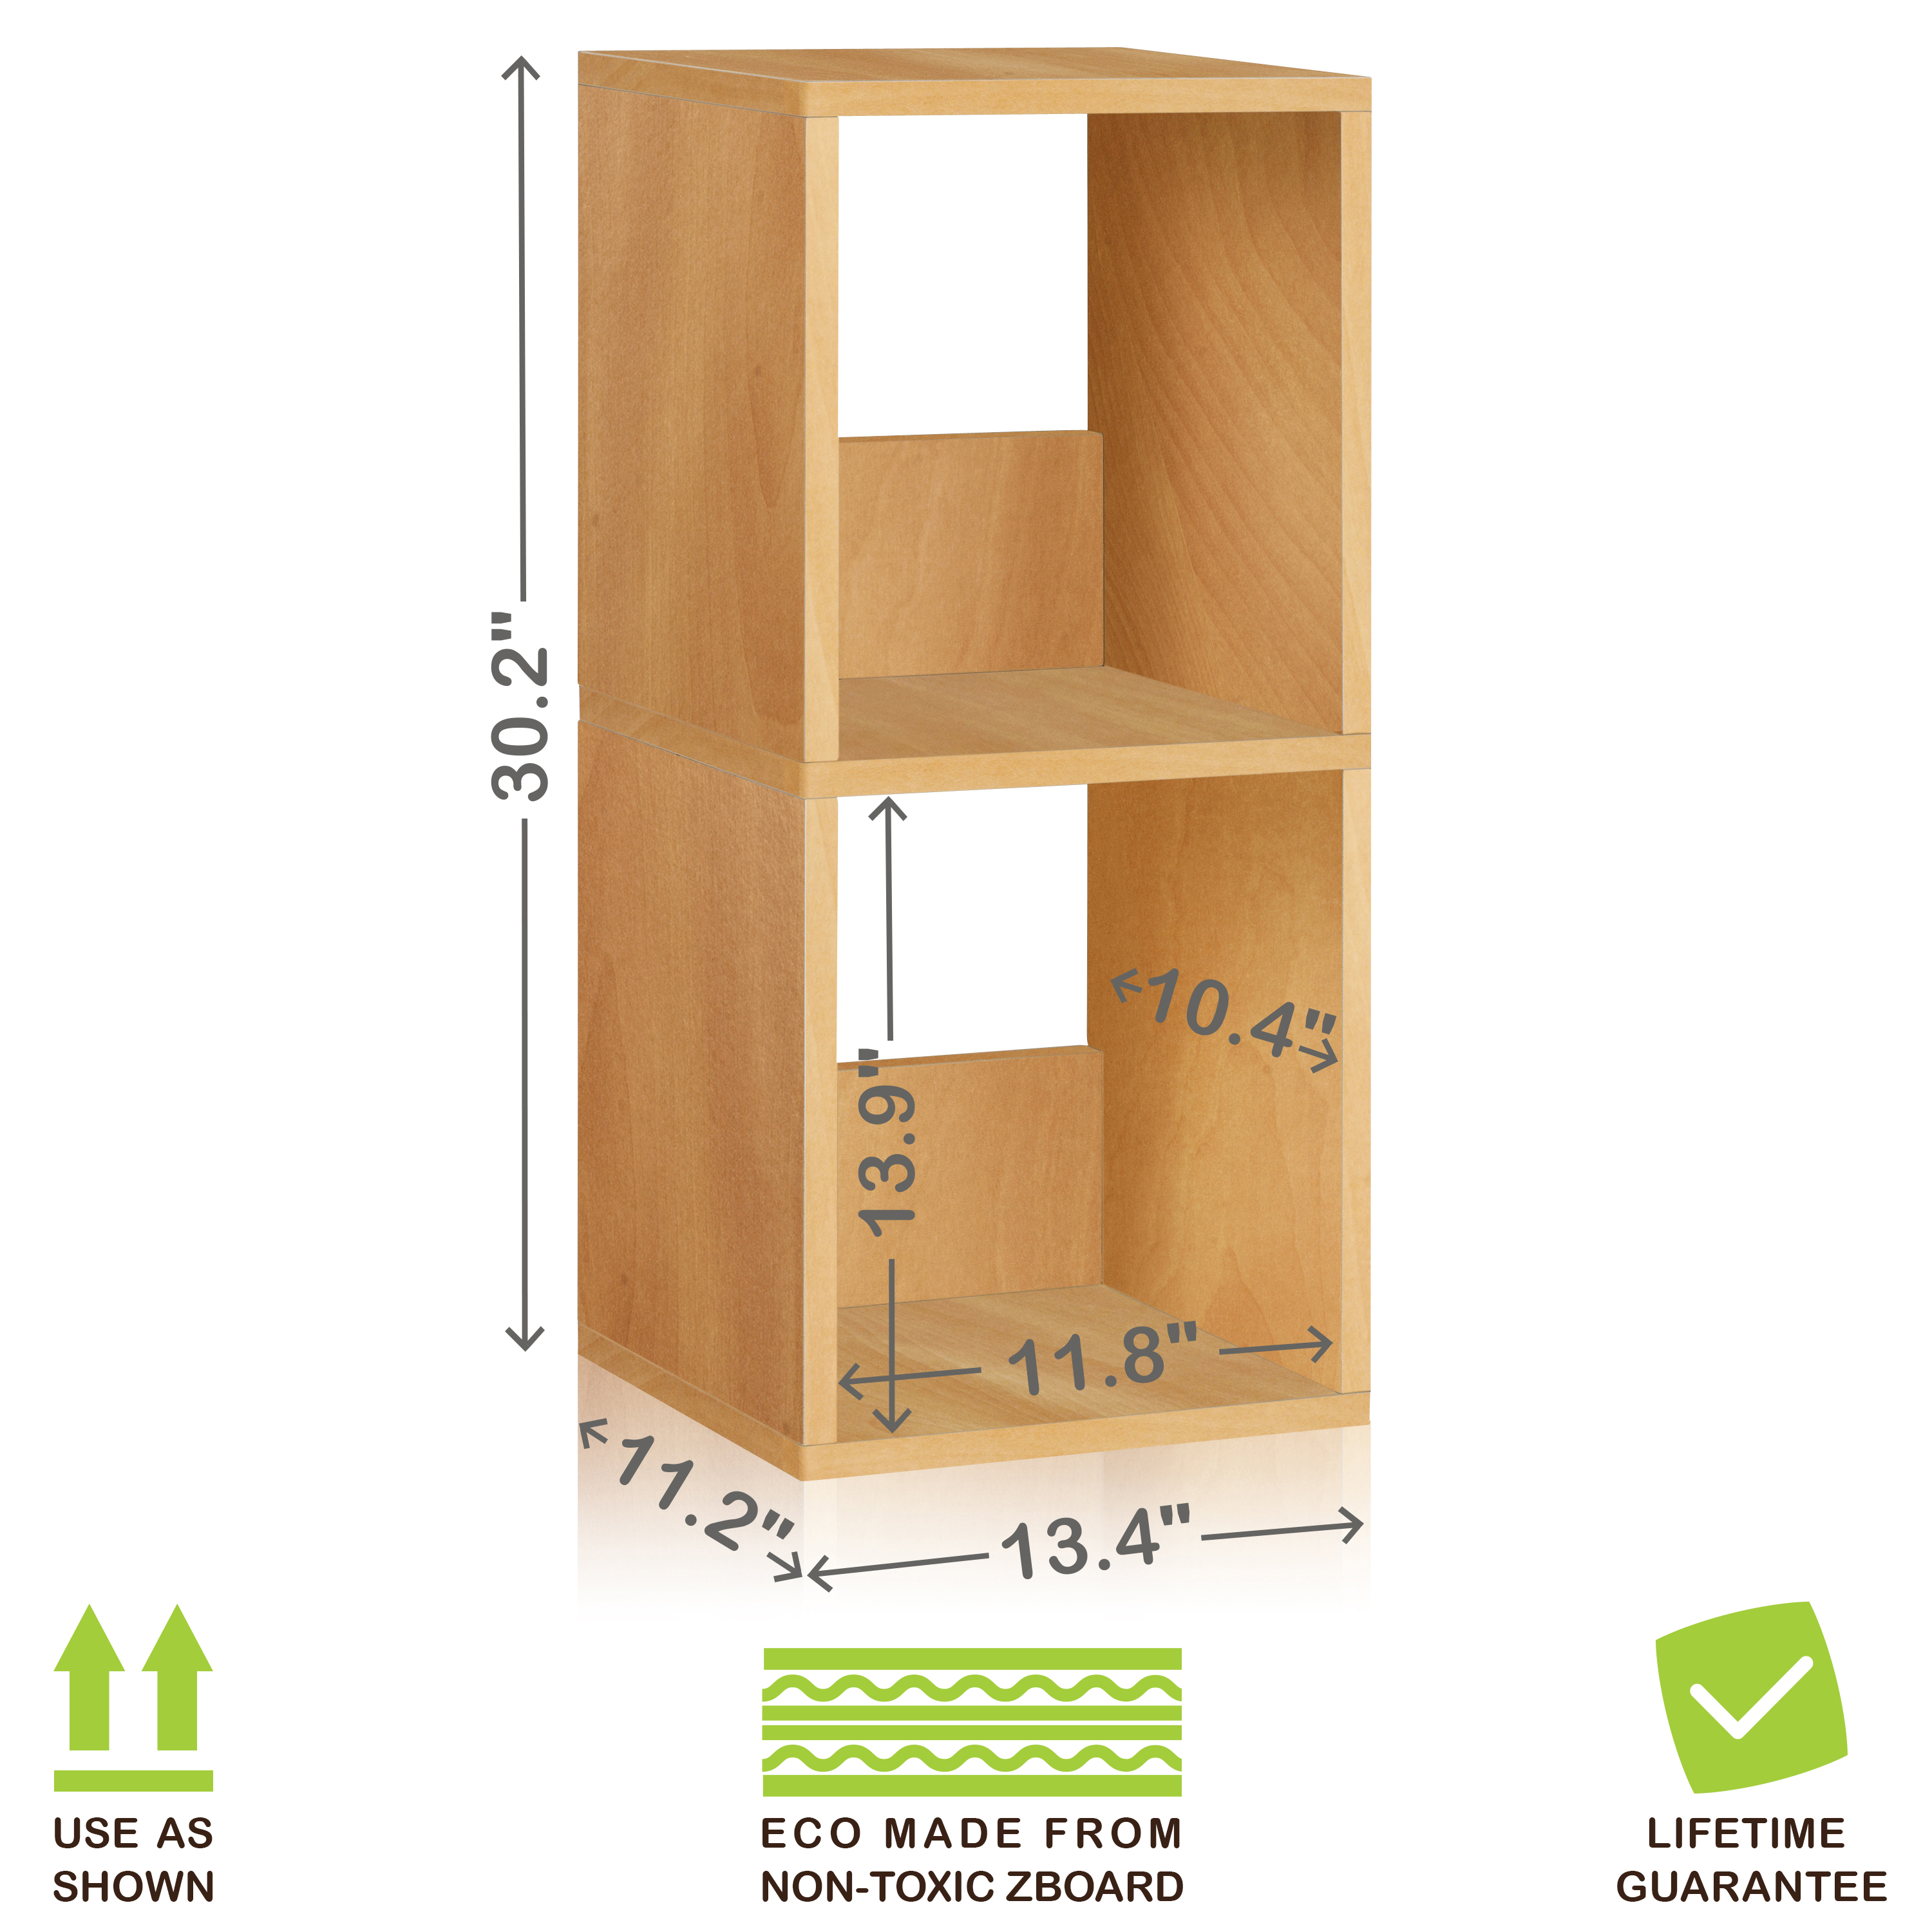 Us 41 24 Eco 2 Shelf Duo Narrow Bookcase And Storage Shelf Natural Wood Grain Tool Free Assembly Lifetime Warranty In Bookcases From Furniture On